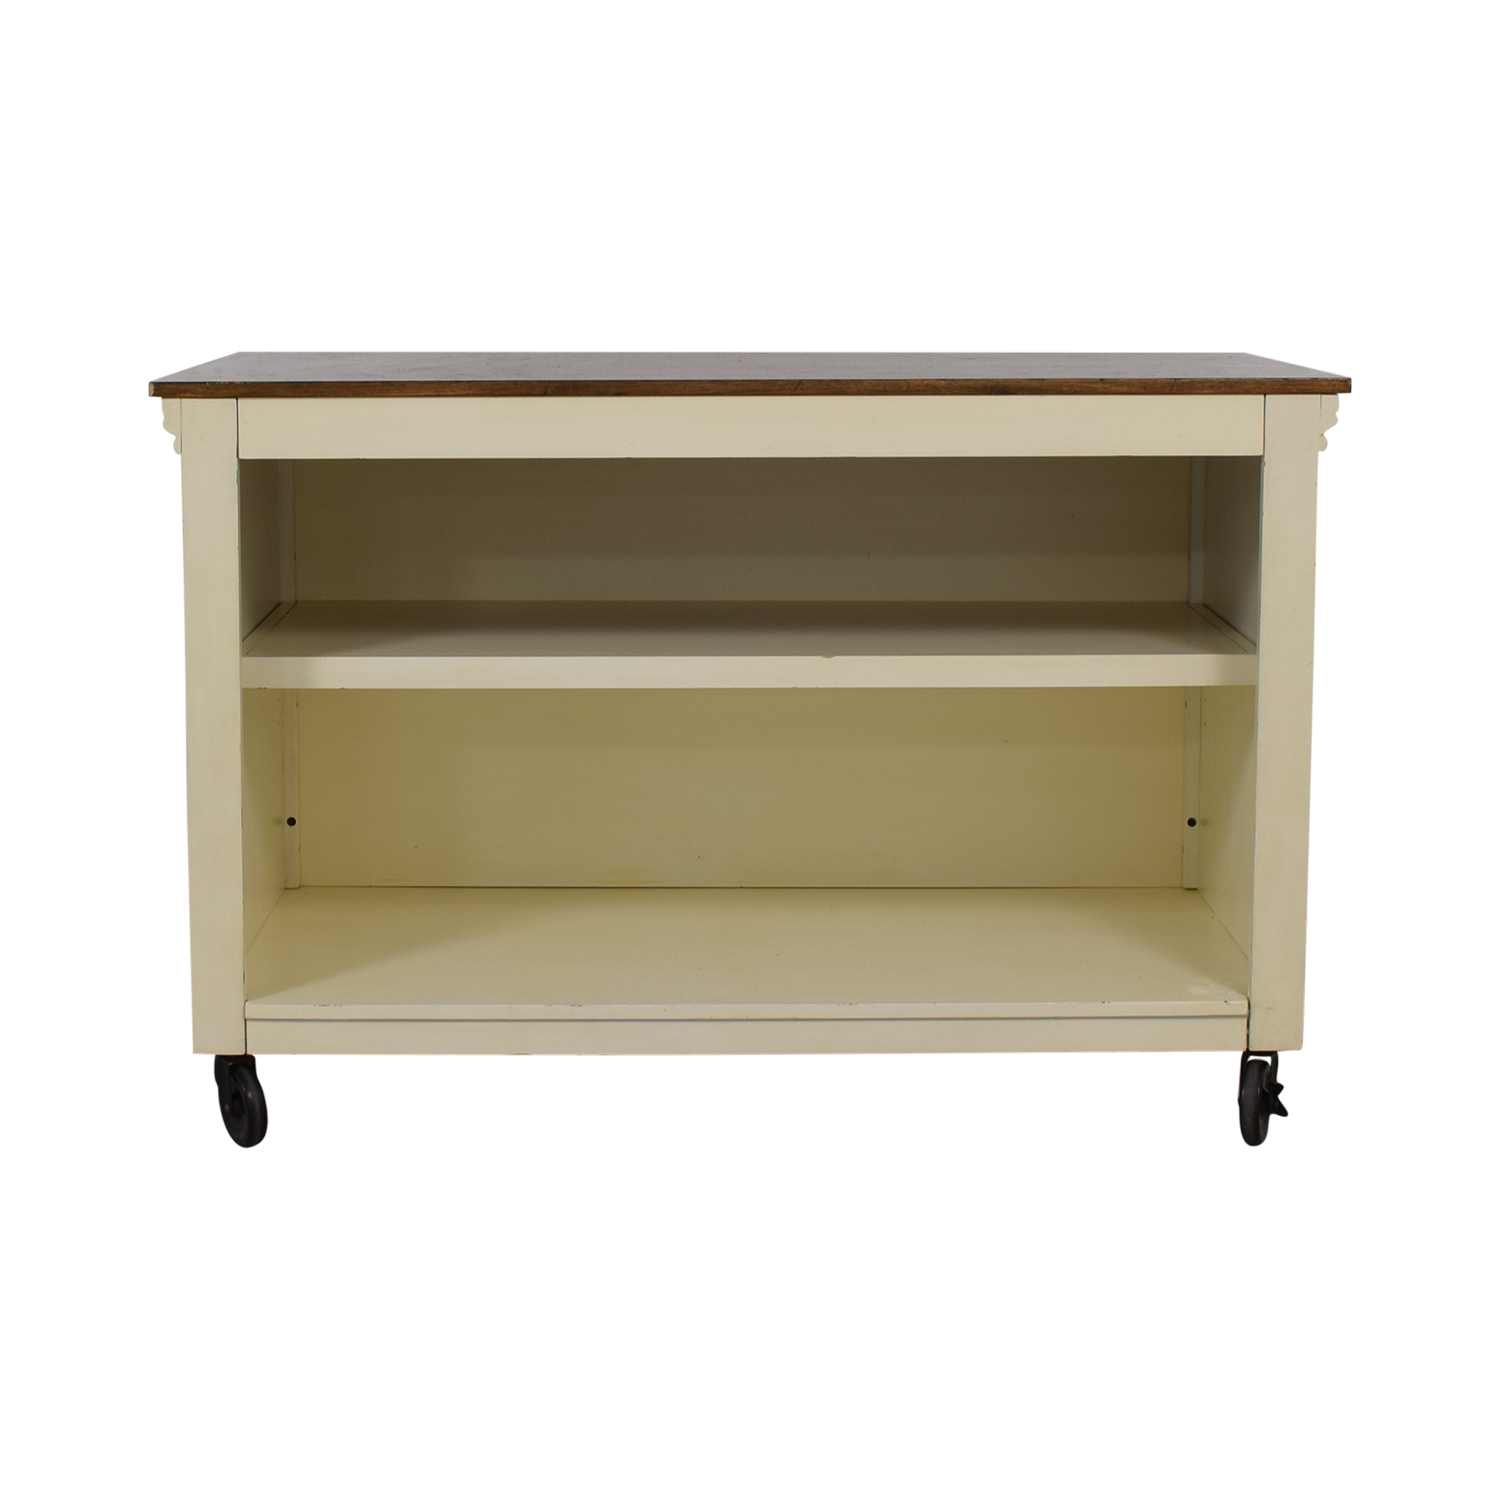 Pottery Barn Pottery Barn Wood Top White Buffet for sale